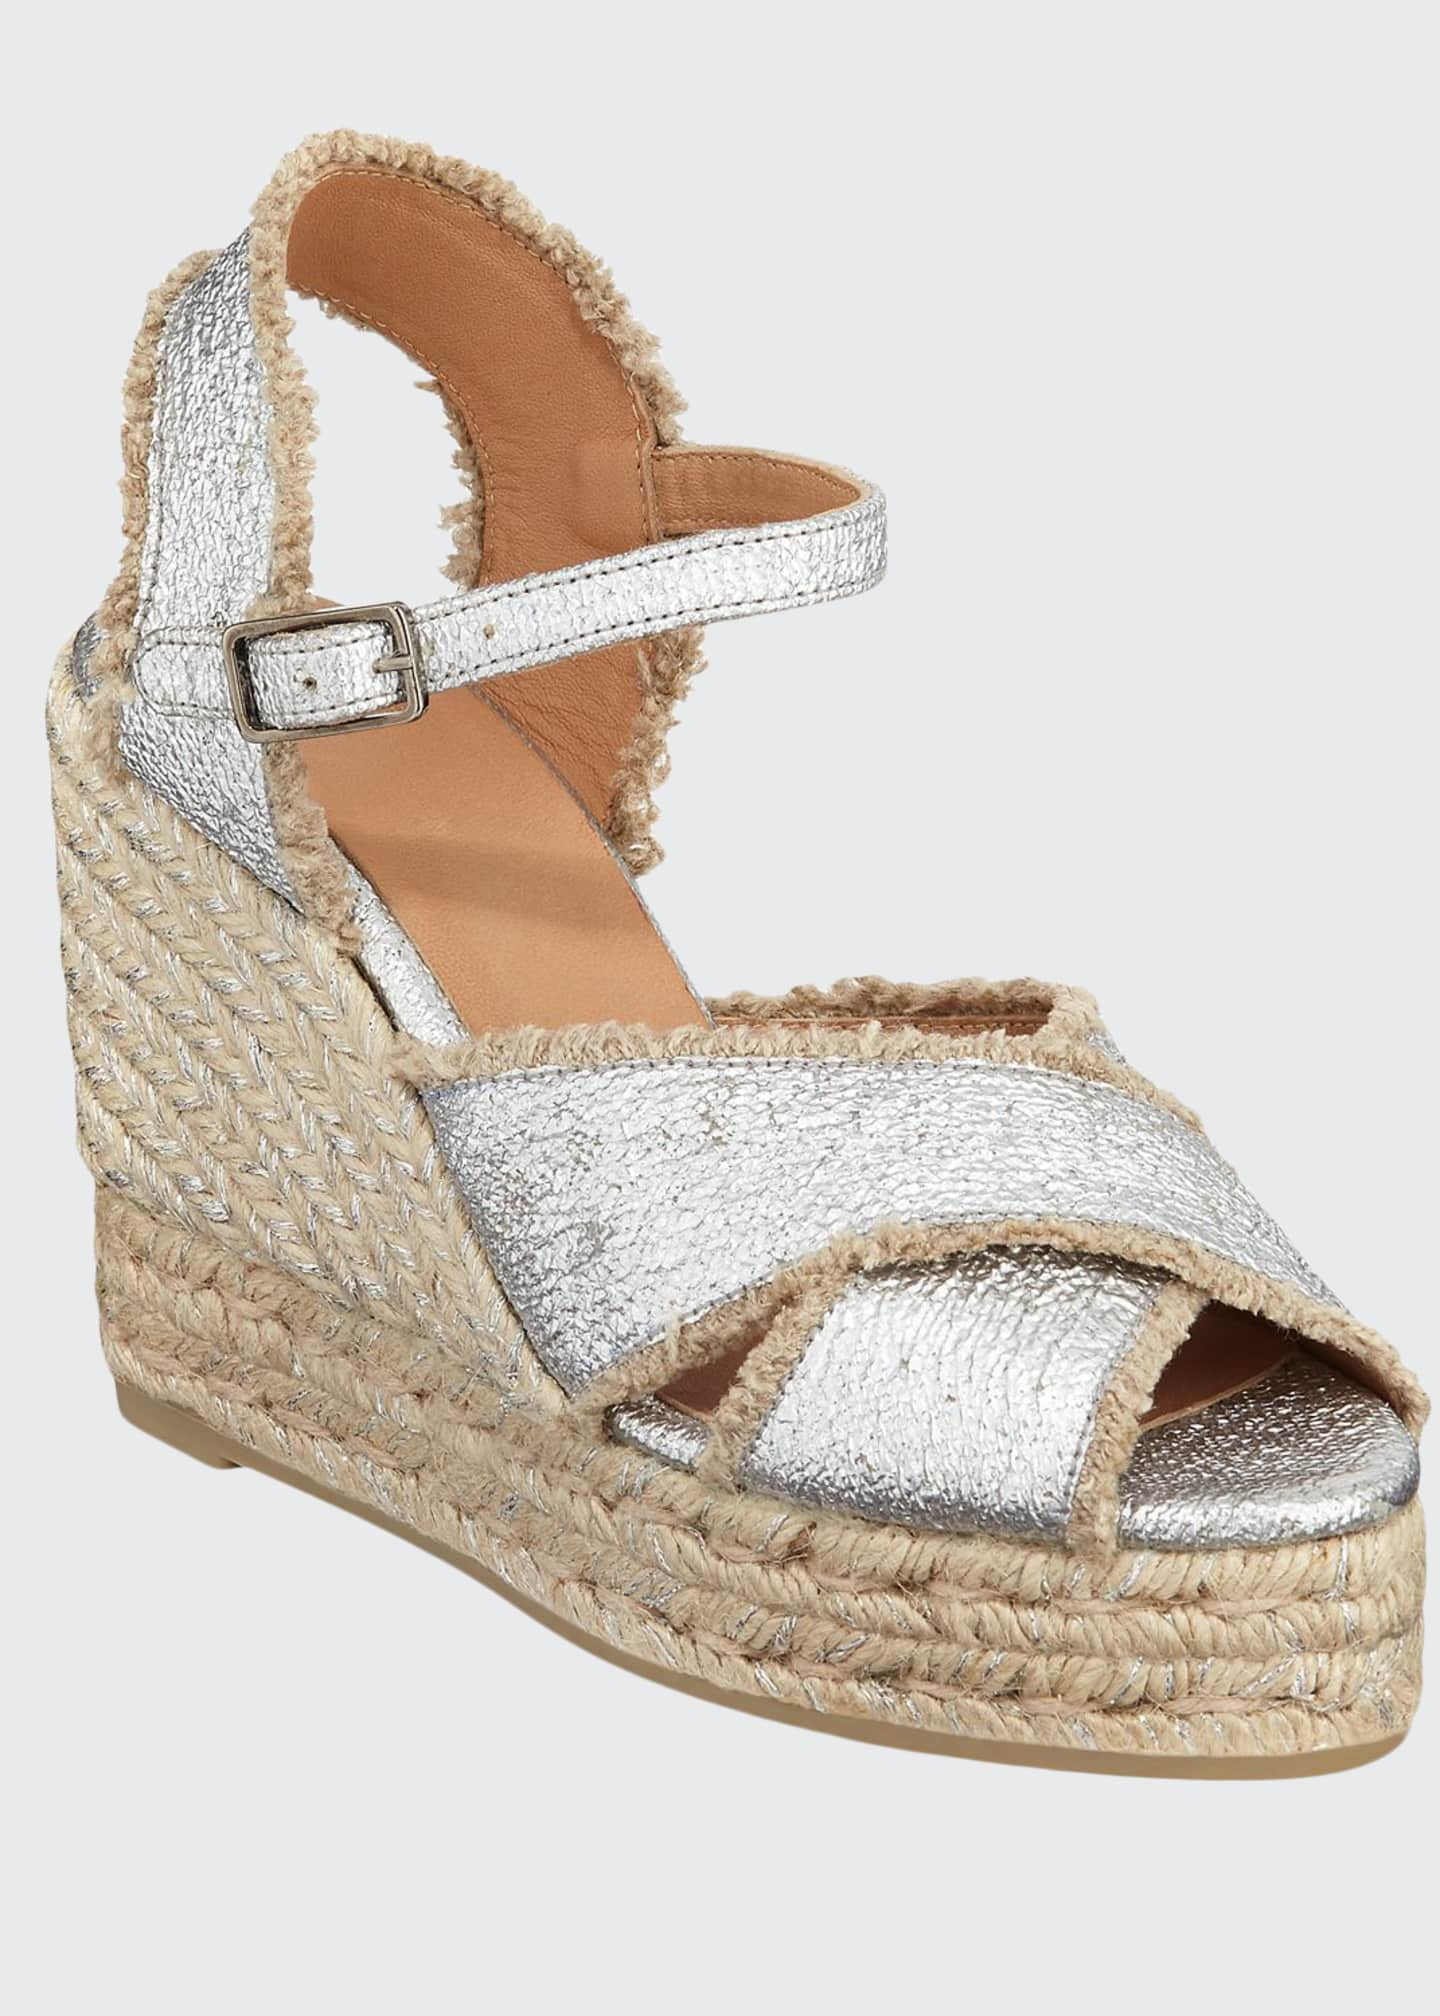 Castaner 100mm Bromelia Wedge Crisscross Espadrille Sandals